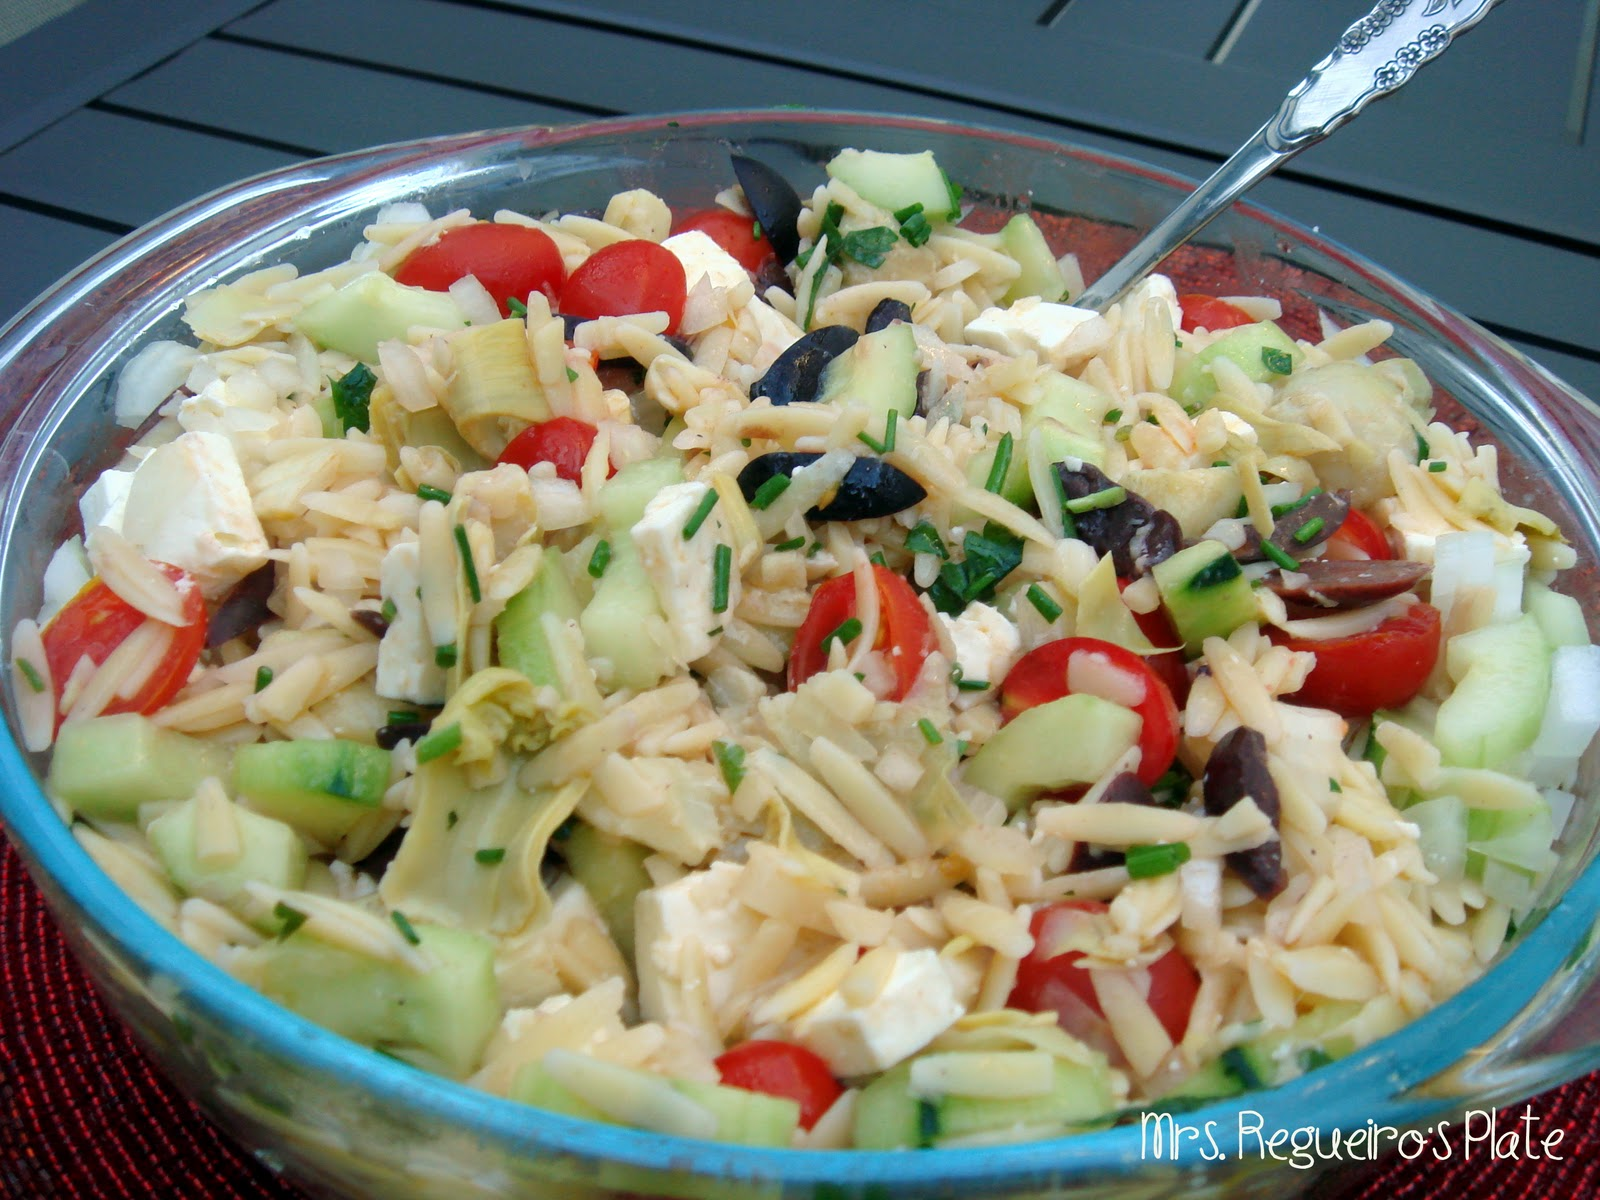 Mrs. Regueiro's Plate: Greek Orzo Salad